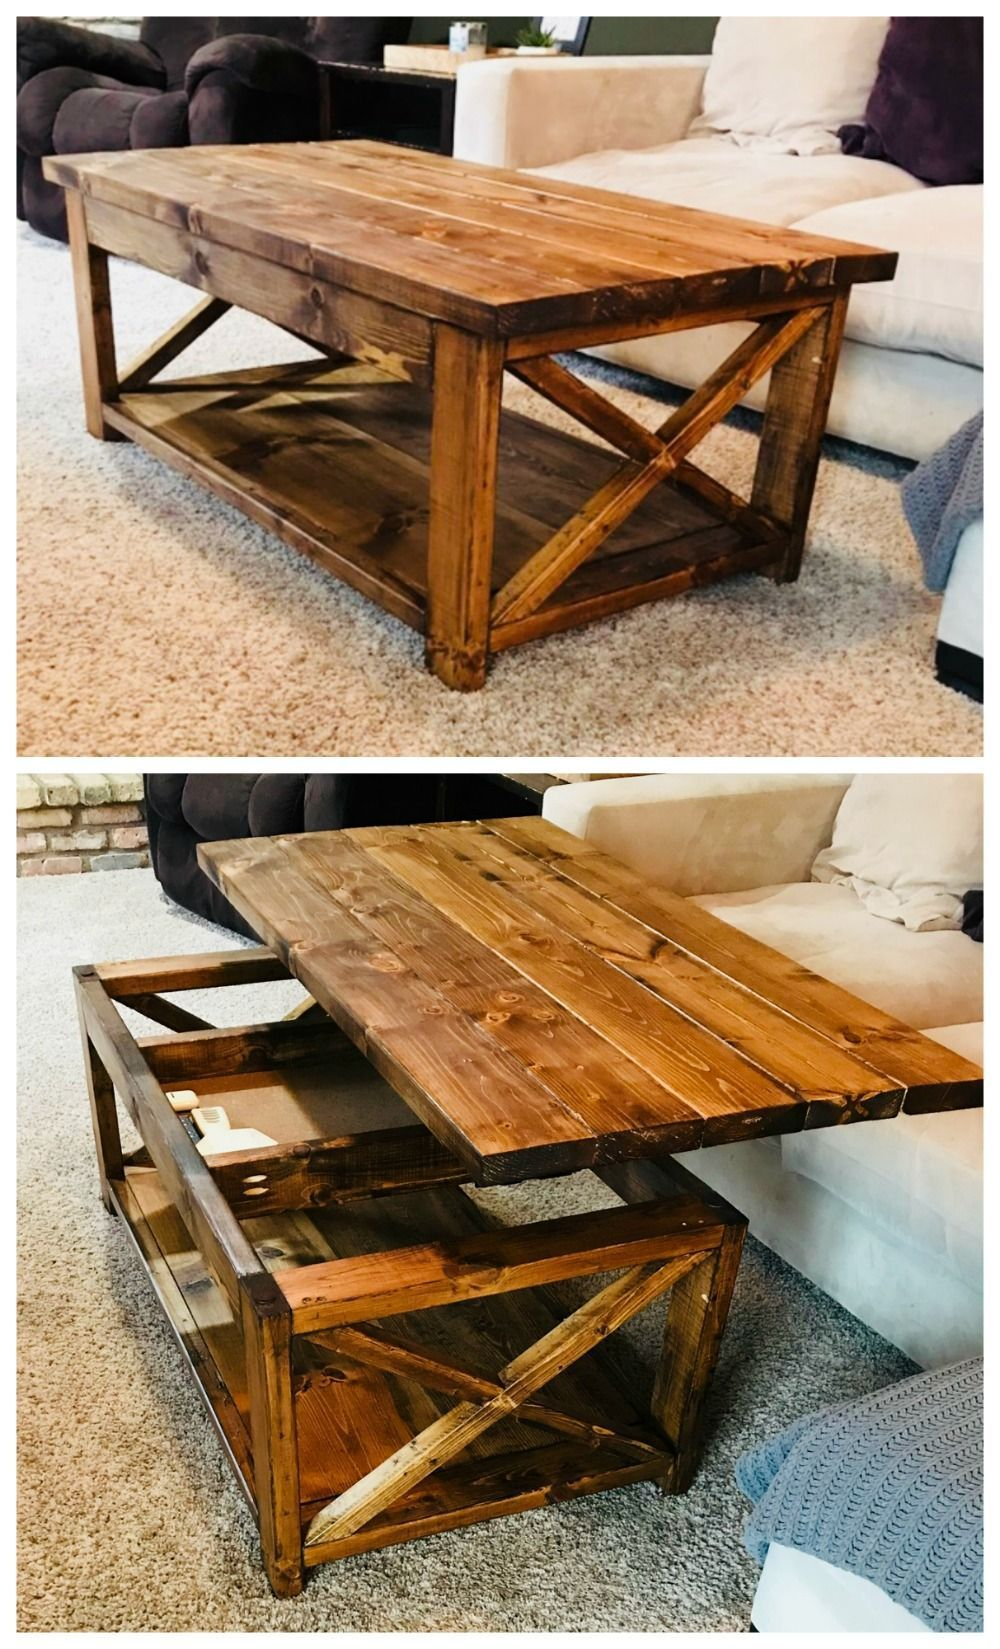 Top 5 Excellent Wood Projects Woodworking Projects For Beginners Coffee Table Plans Diy Furniture Plans Wood Diy [ 1649 x 1000 Pixel ]